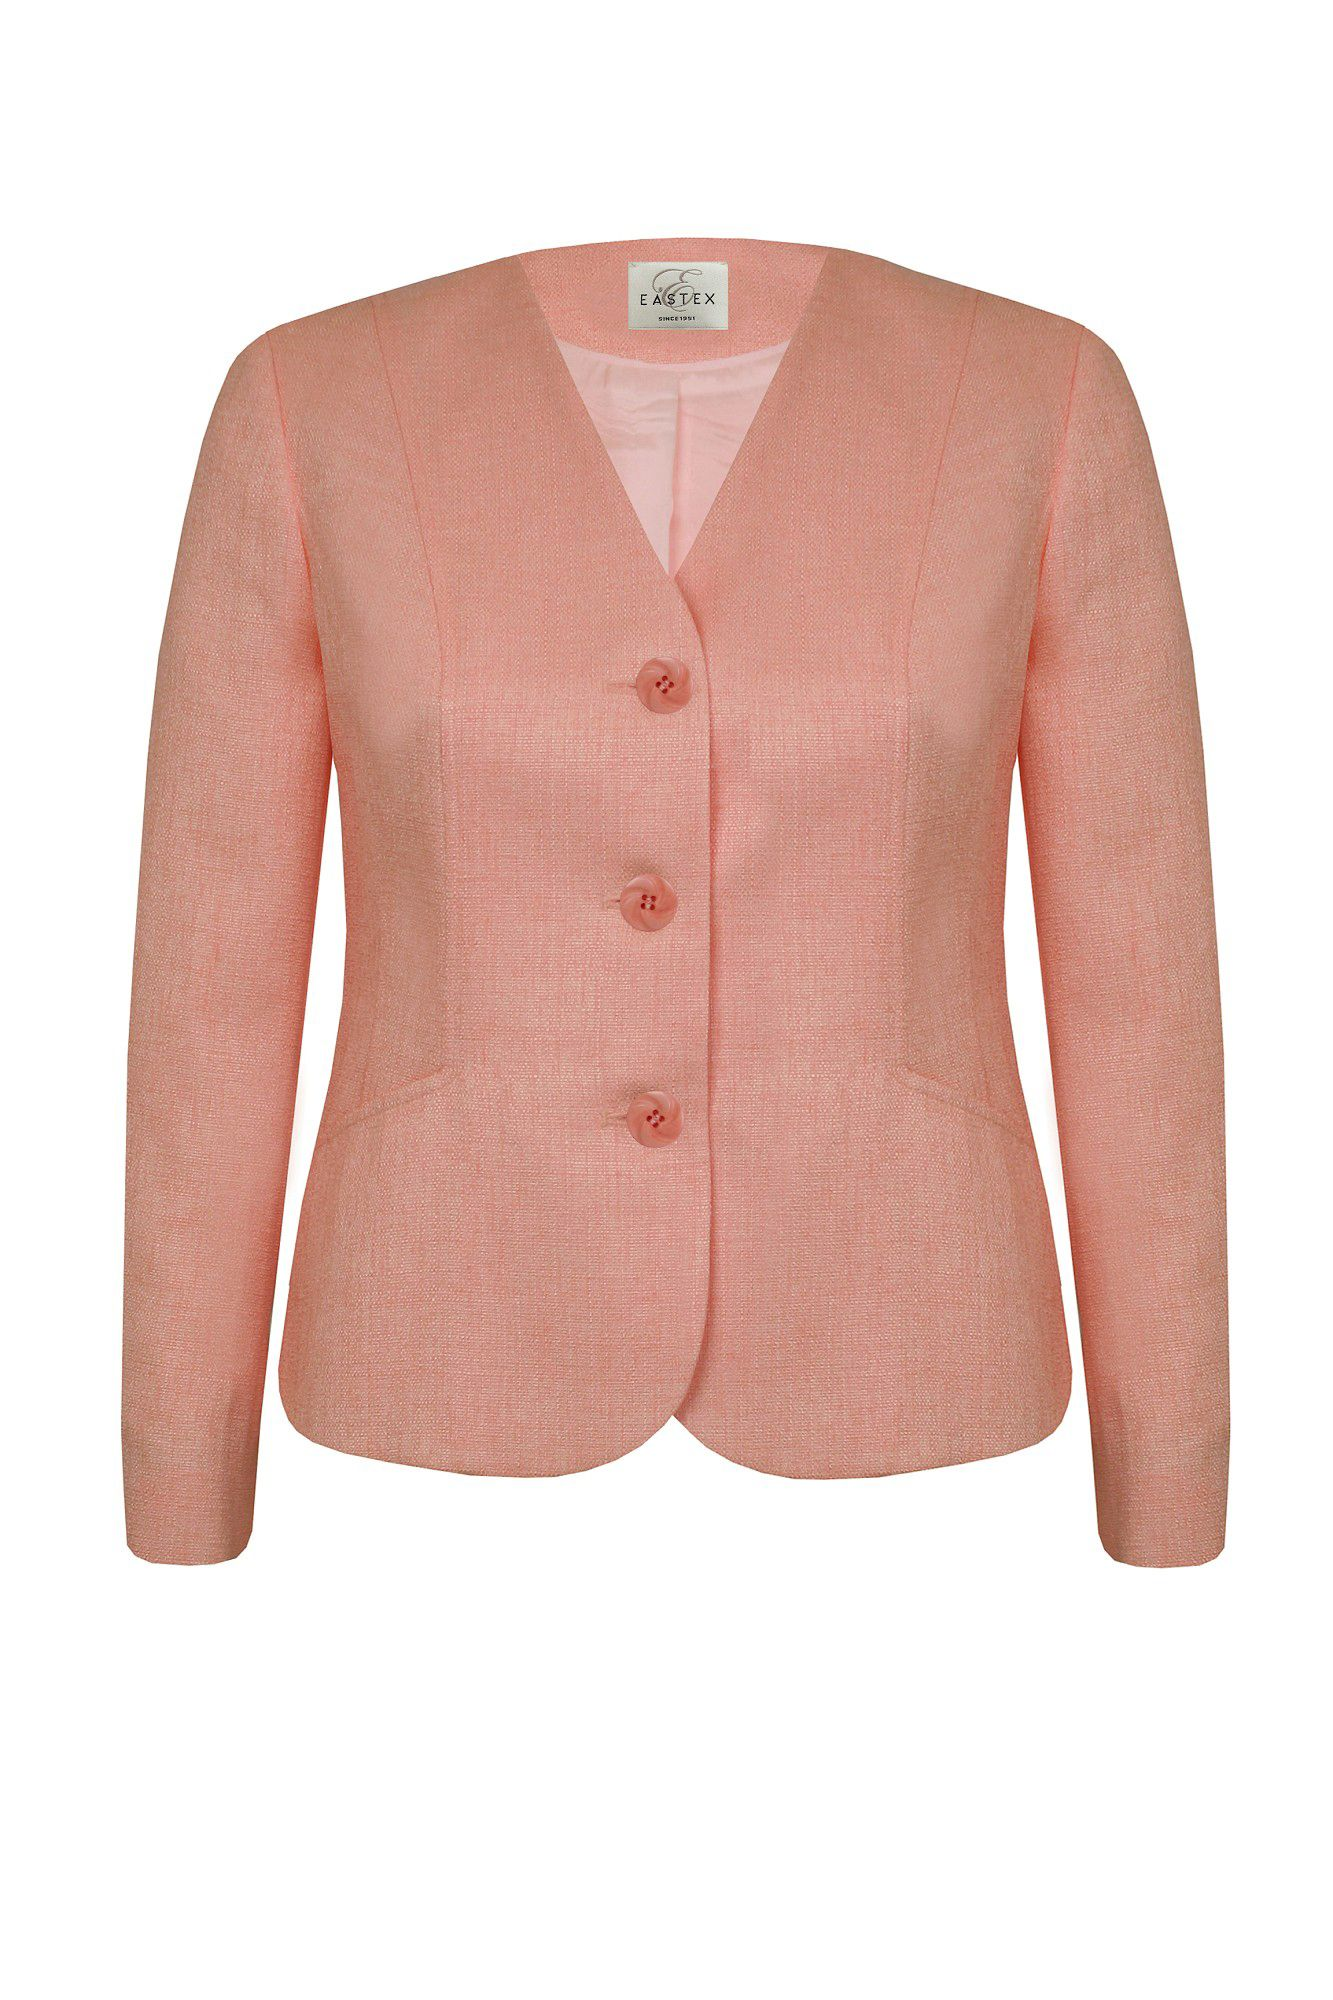 3 button basket weave jacket